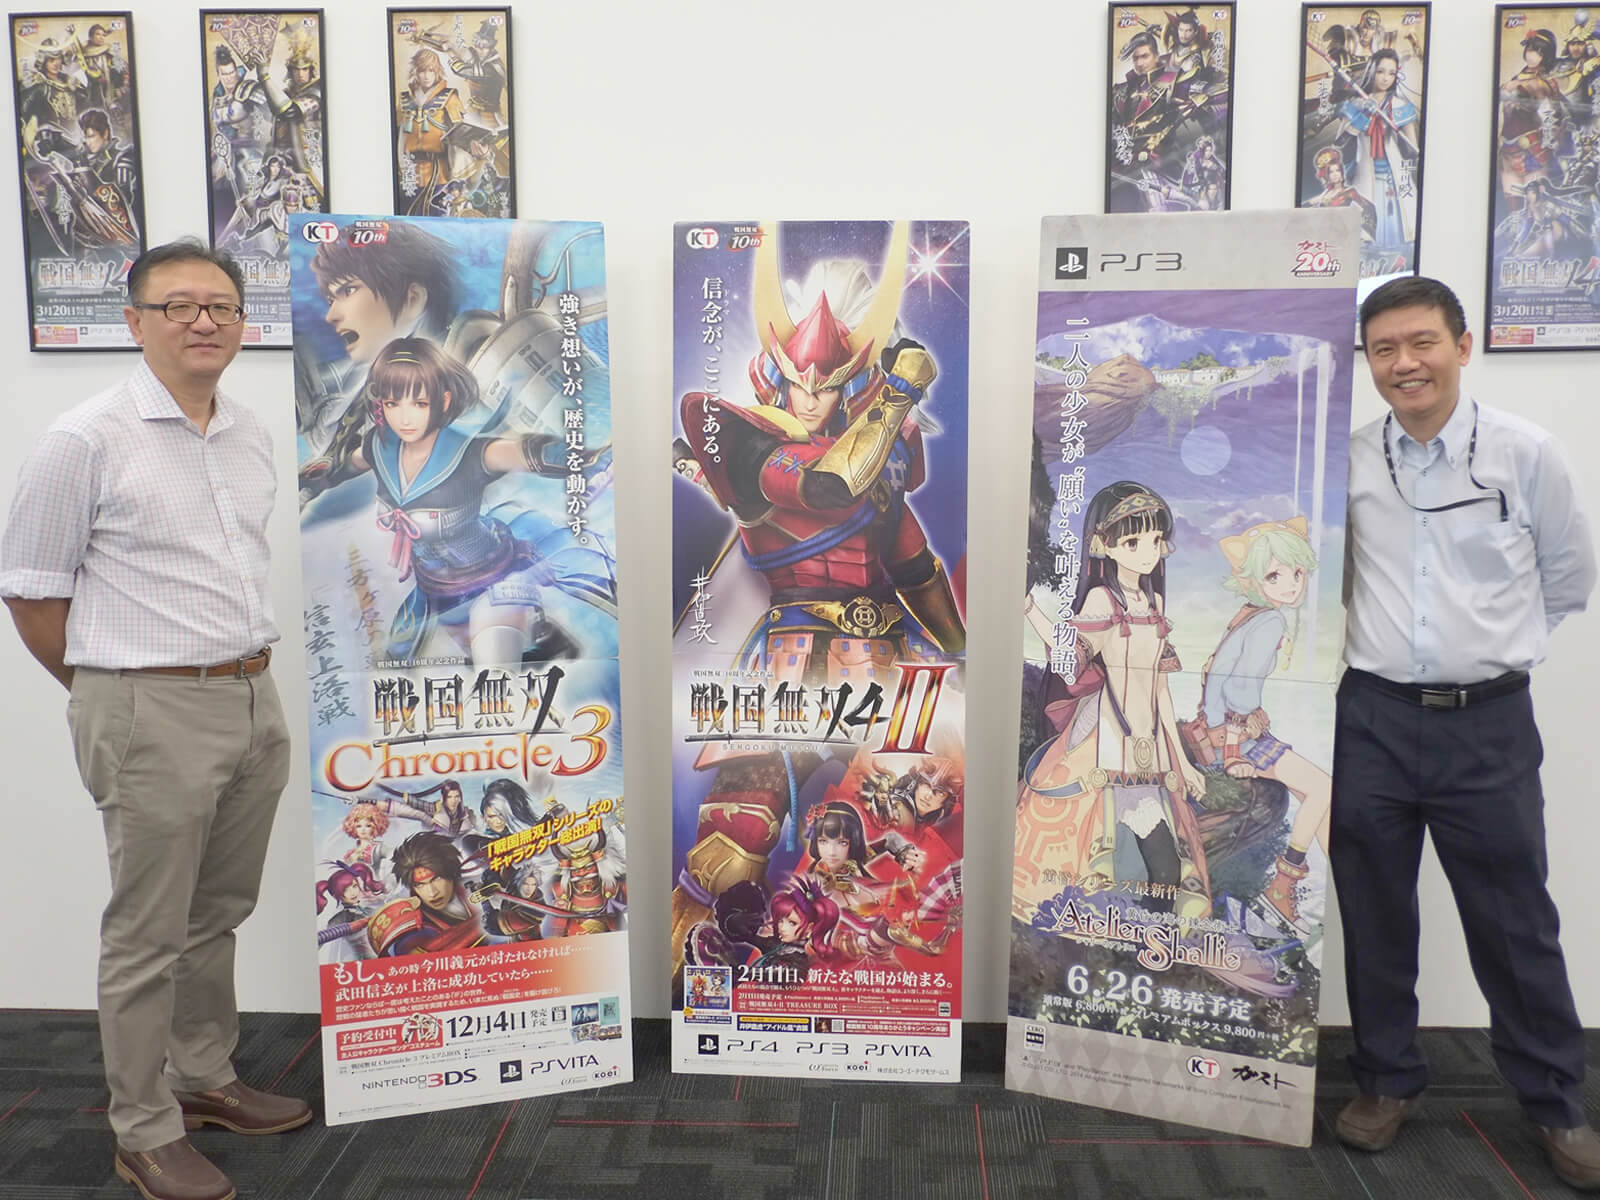 DigiPen (Singapore) representatives stand with vertical banners displaying Koei Tecmo video game titles